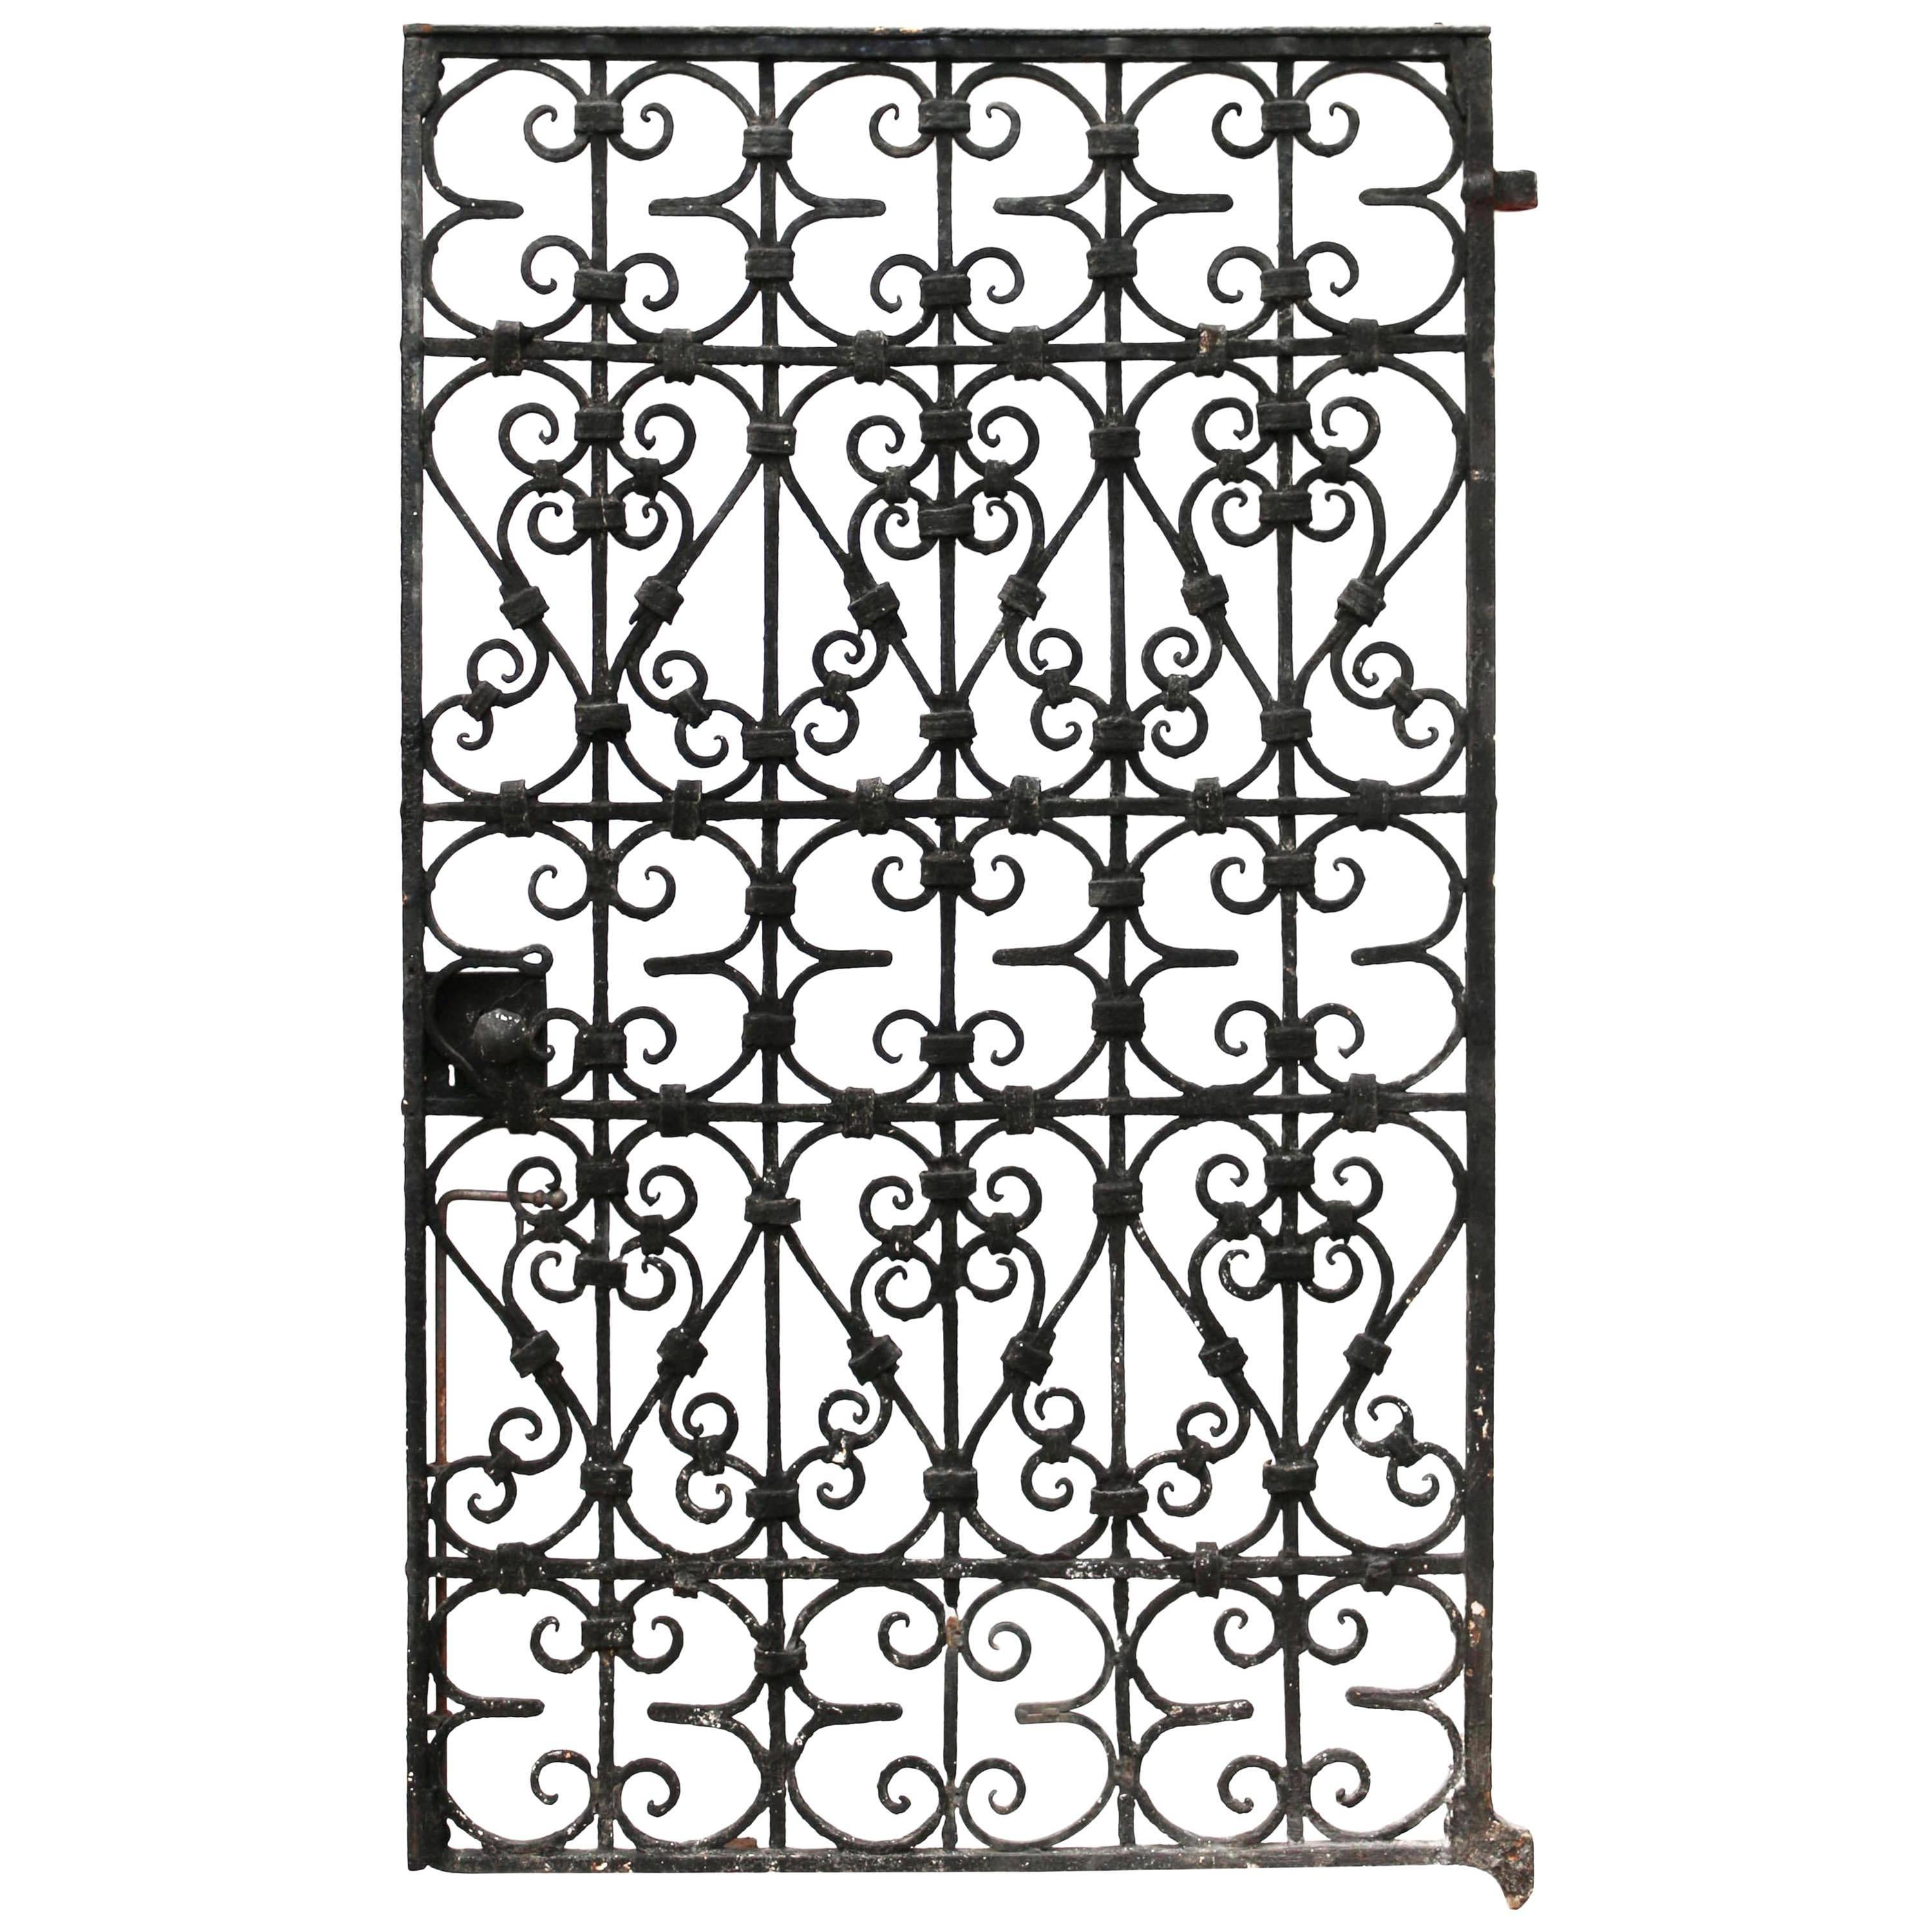 Black Wrought Iron Pedestrian Gate Circa 1900 For Sale At 1stdibs